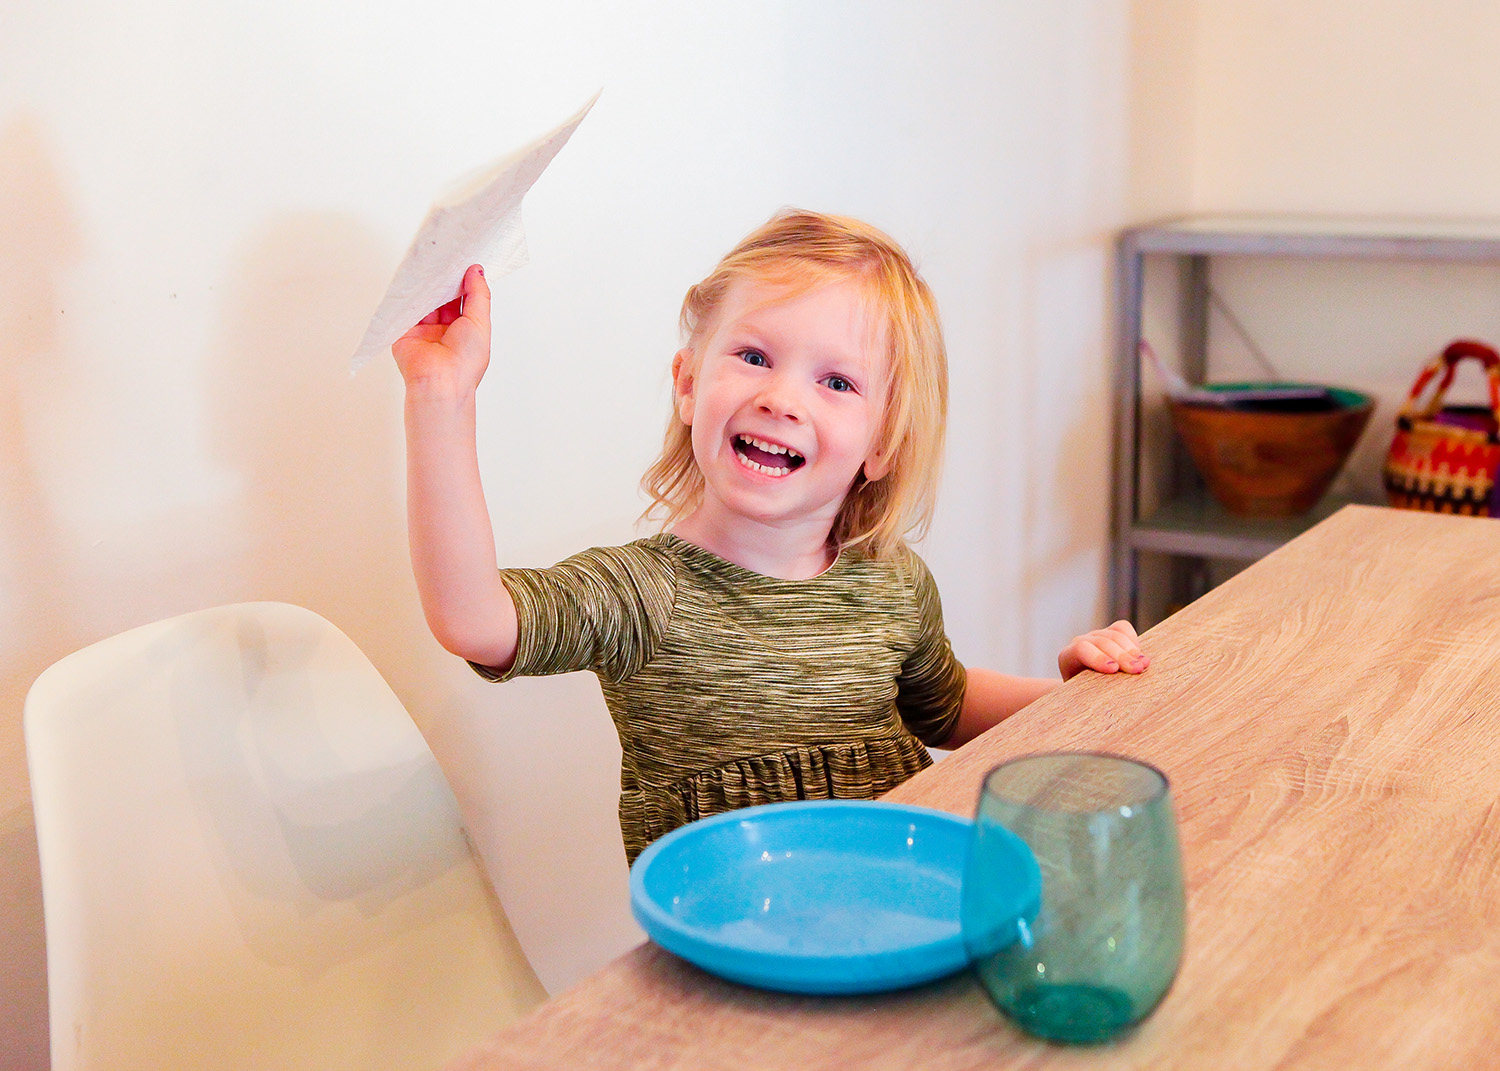 Looking for age appropriate chores? These preschooler chores are PERFECT!